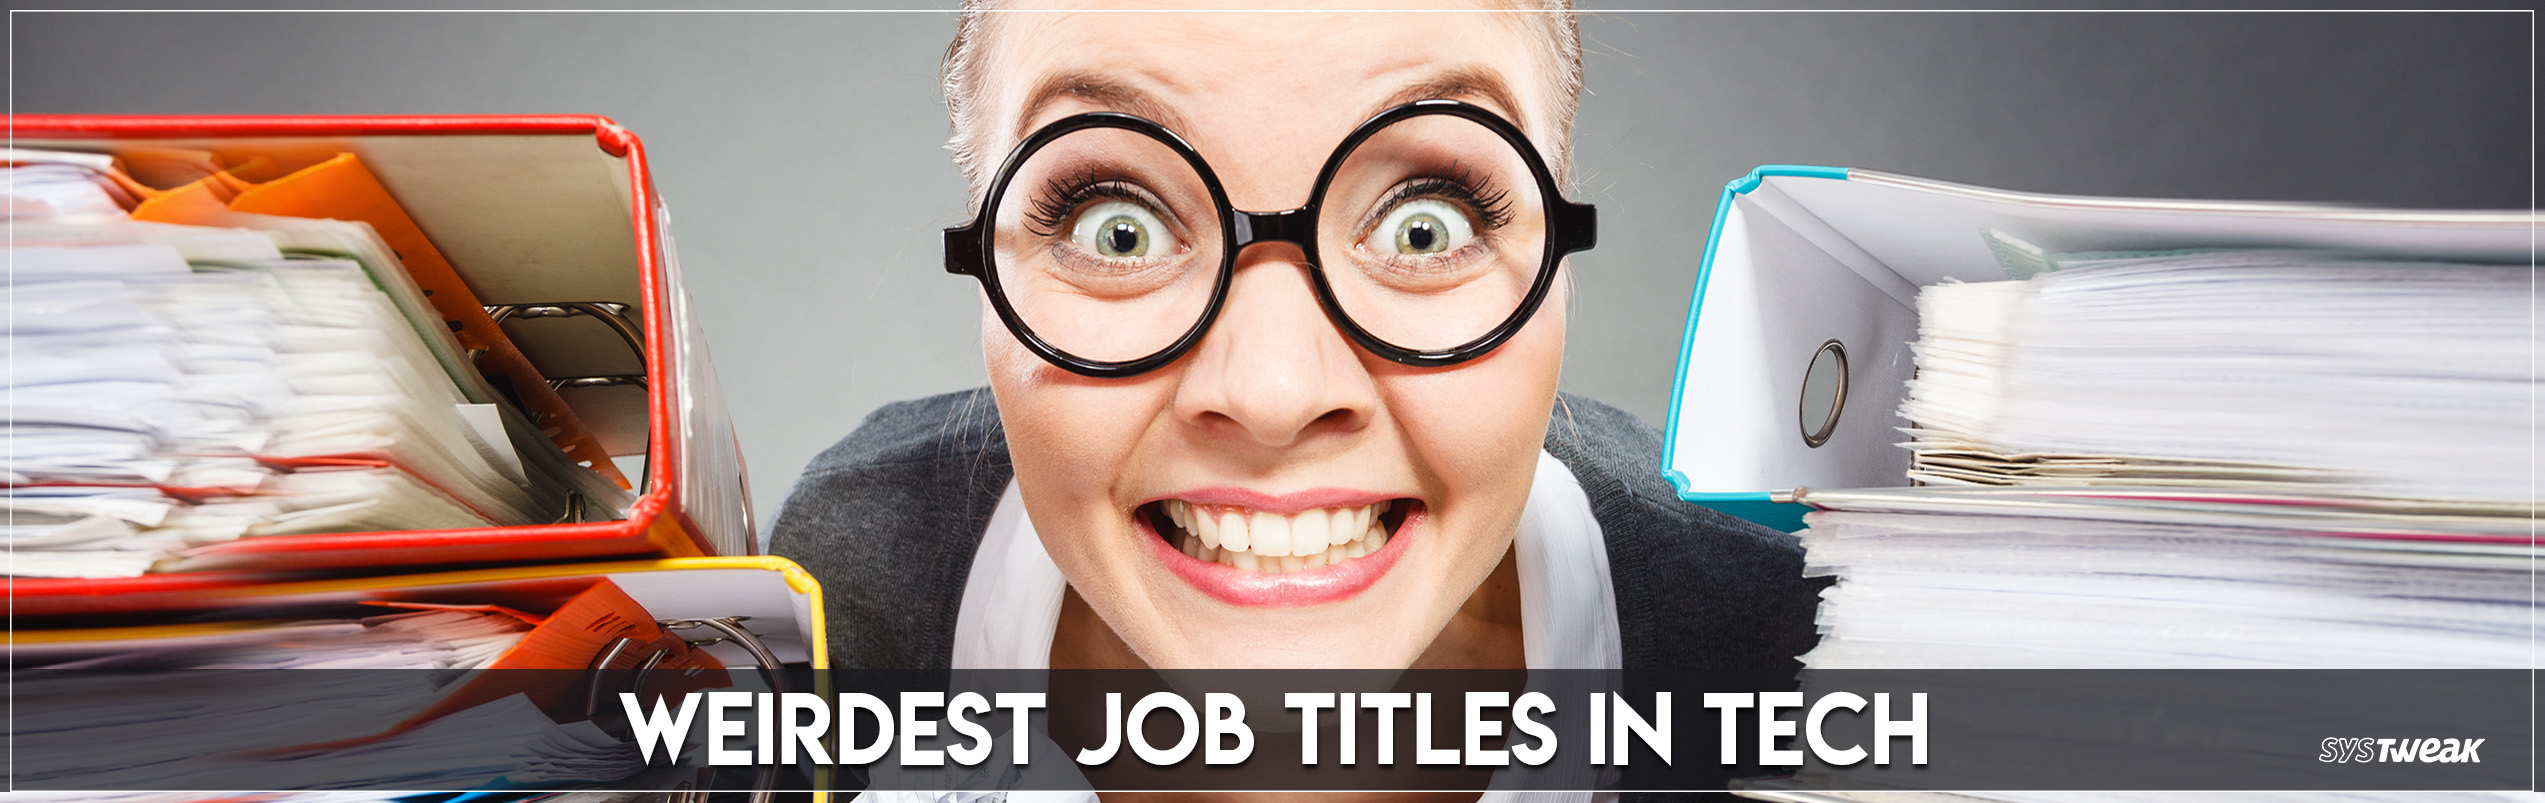 Friday Essential: Funny Tech Job Titles You Never Knew Existed